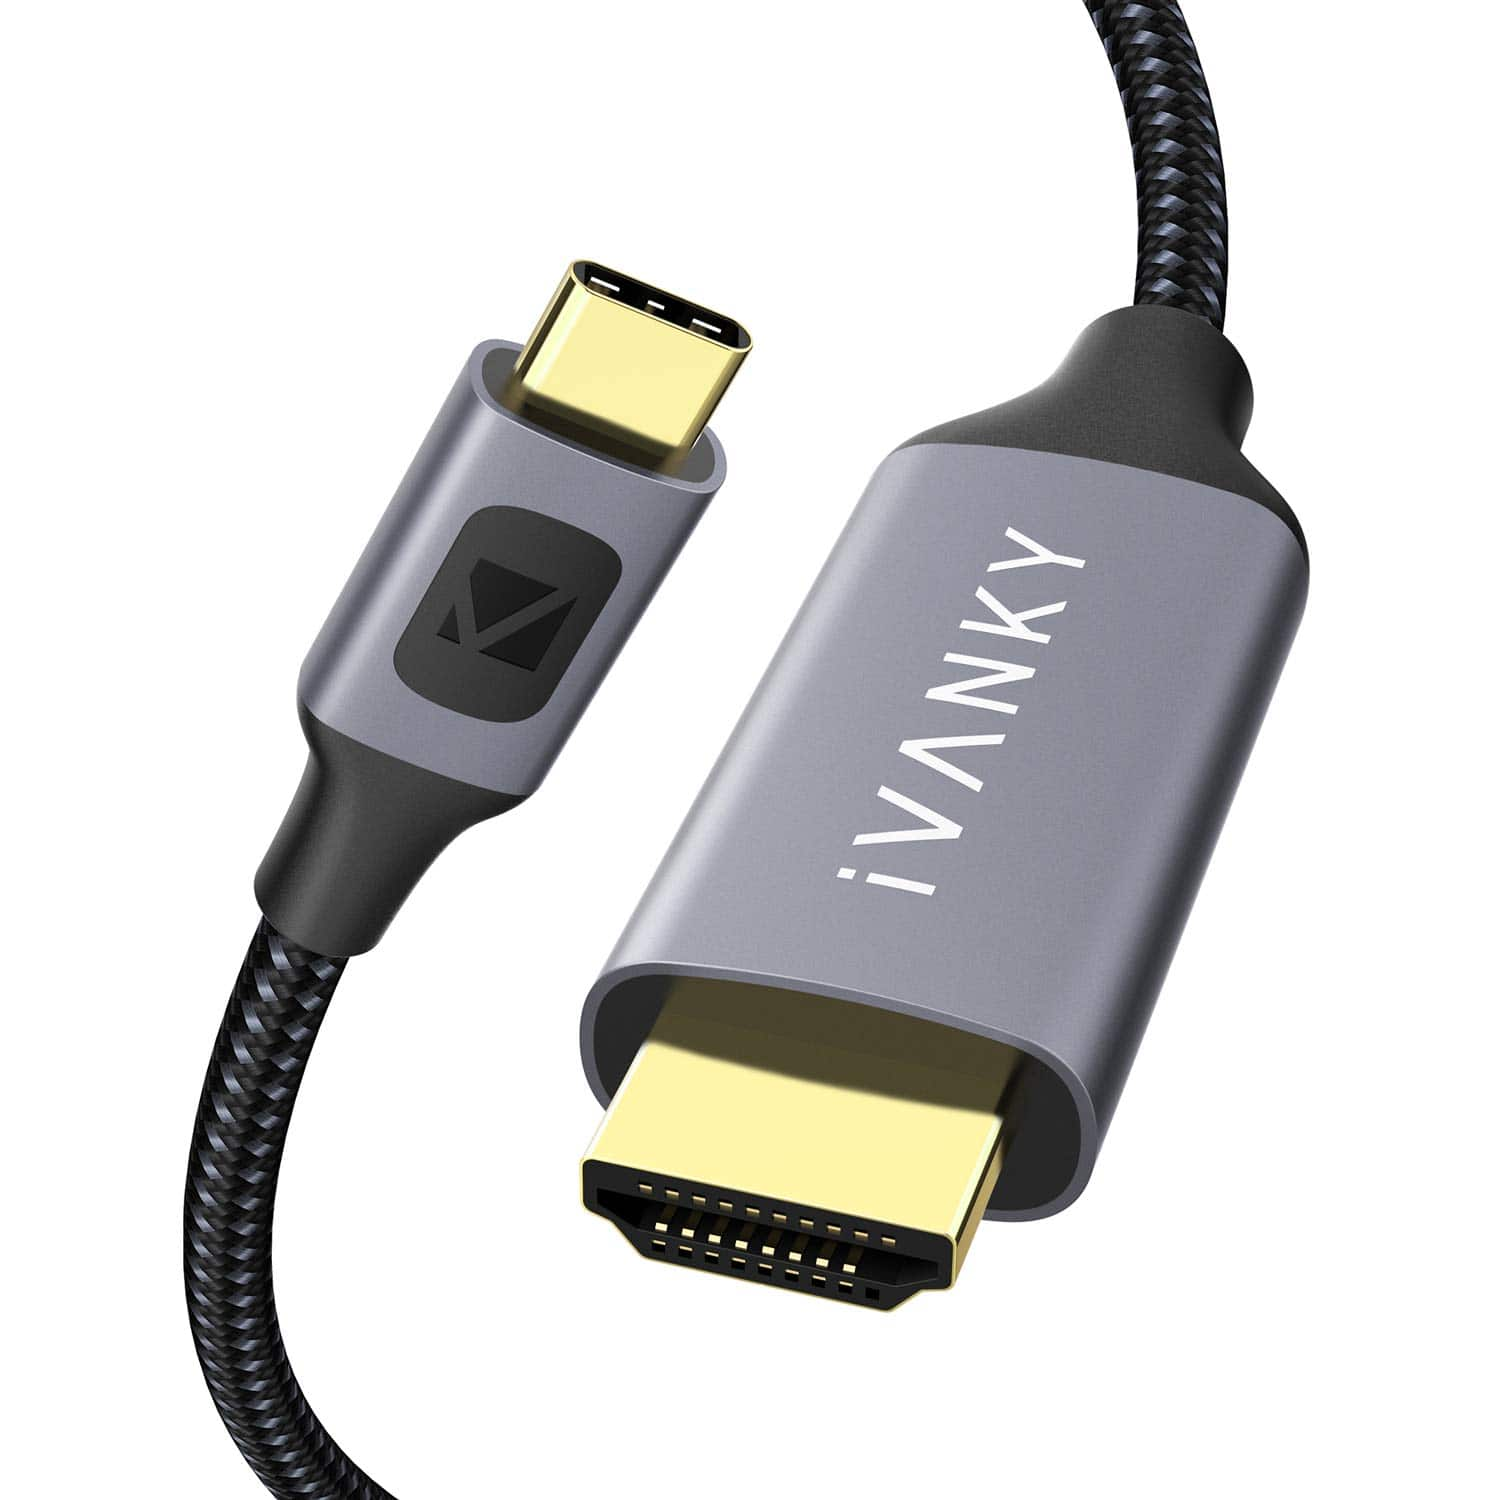 iVANKY USB C to HDMI Cable, 4K@60Hz Nylon Braided Cable, $7.99